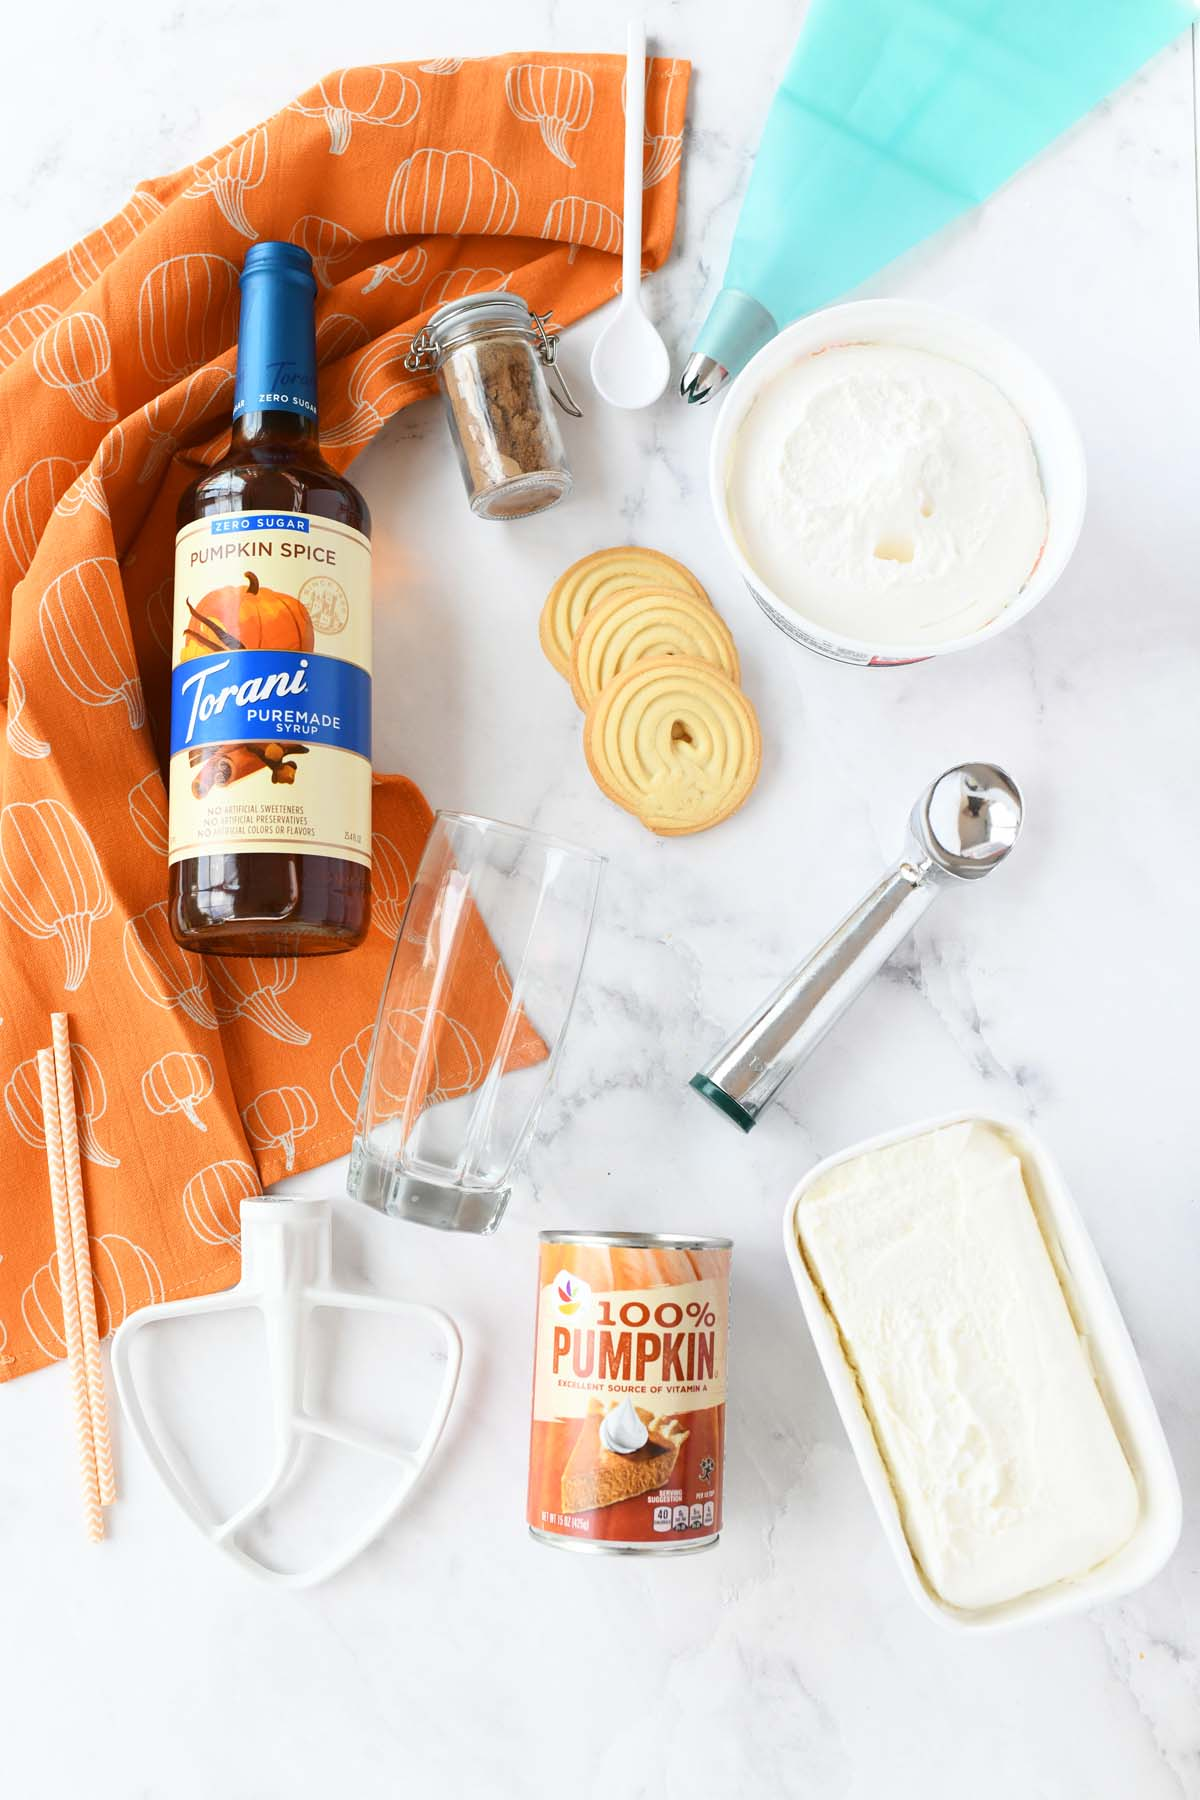 Sugarfree Pumpkin Spice drink ingredients on a white table.